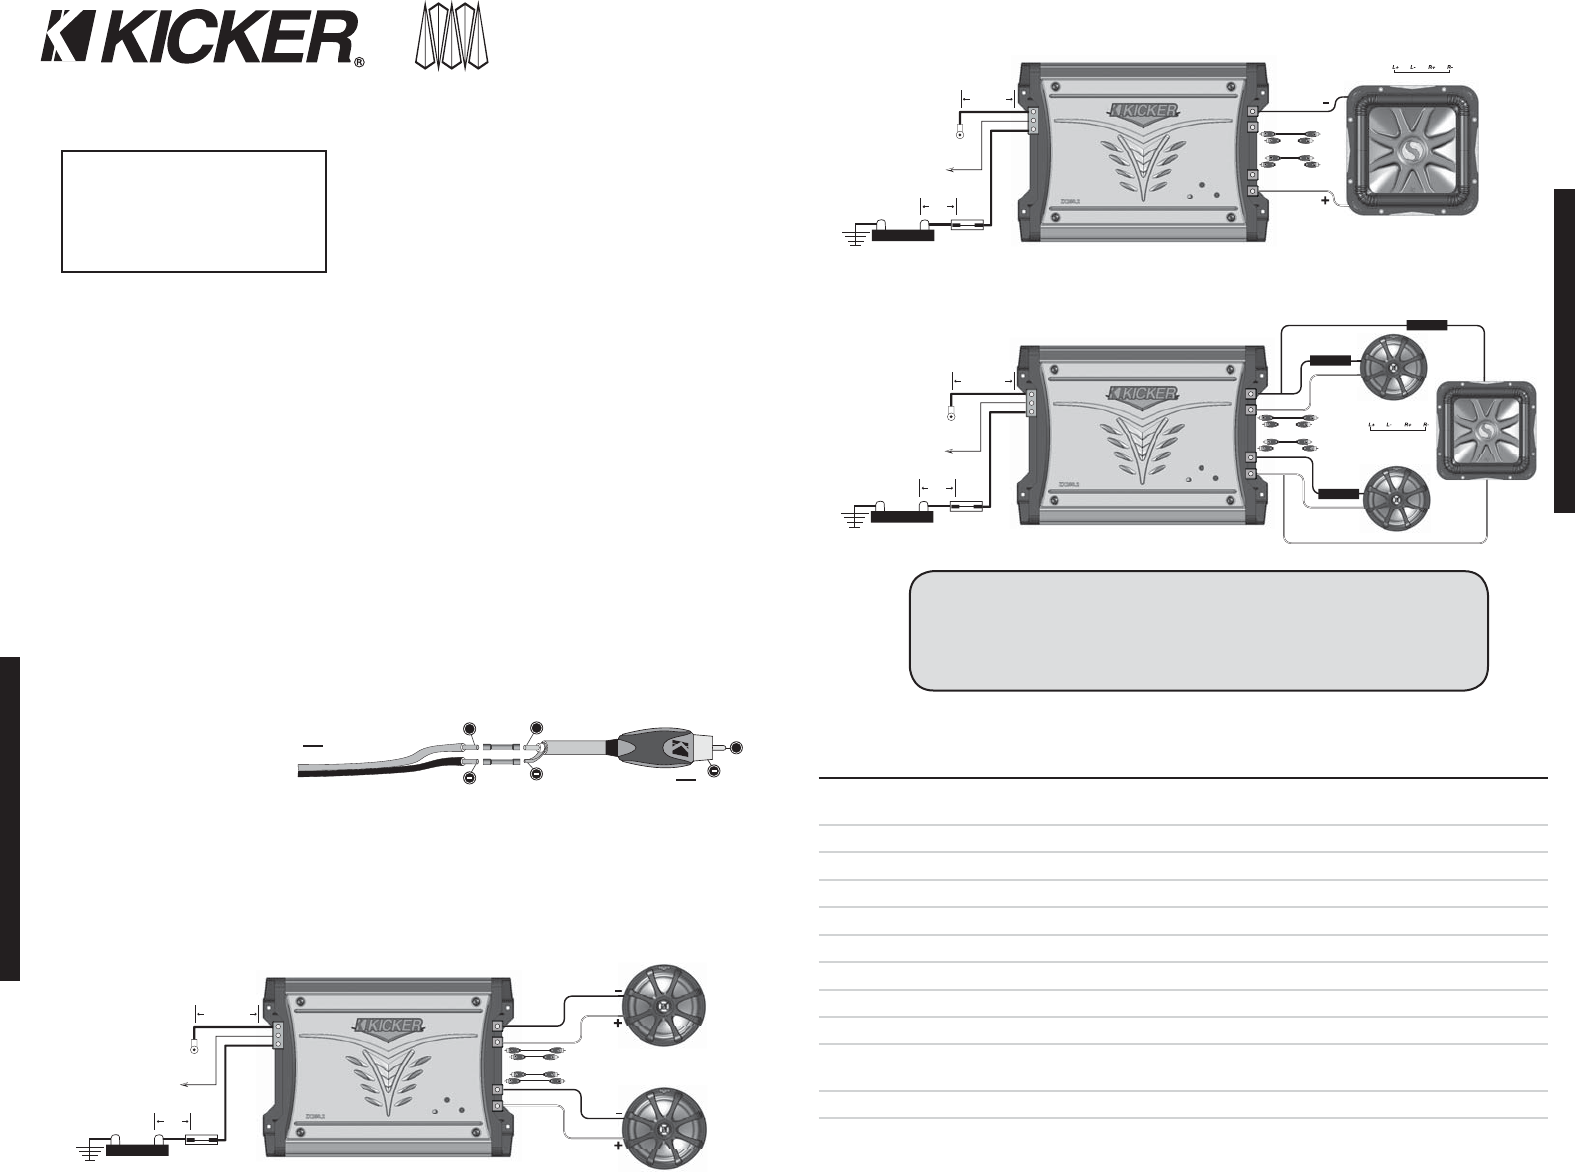 03ca3282 0eaf bb54 355e ea3974394e67 bg2 page 2 of kicker stereo amplifier zx350 2 user guide kicker led speaker wiring diagram at creativeand.co